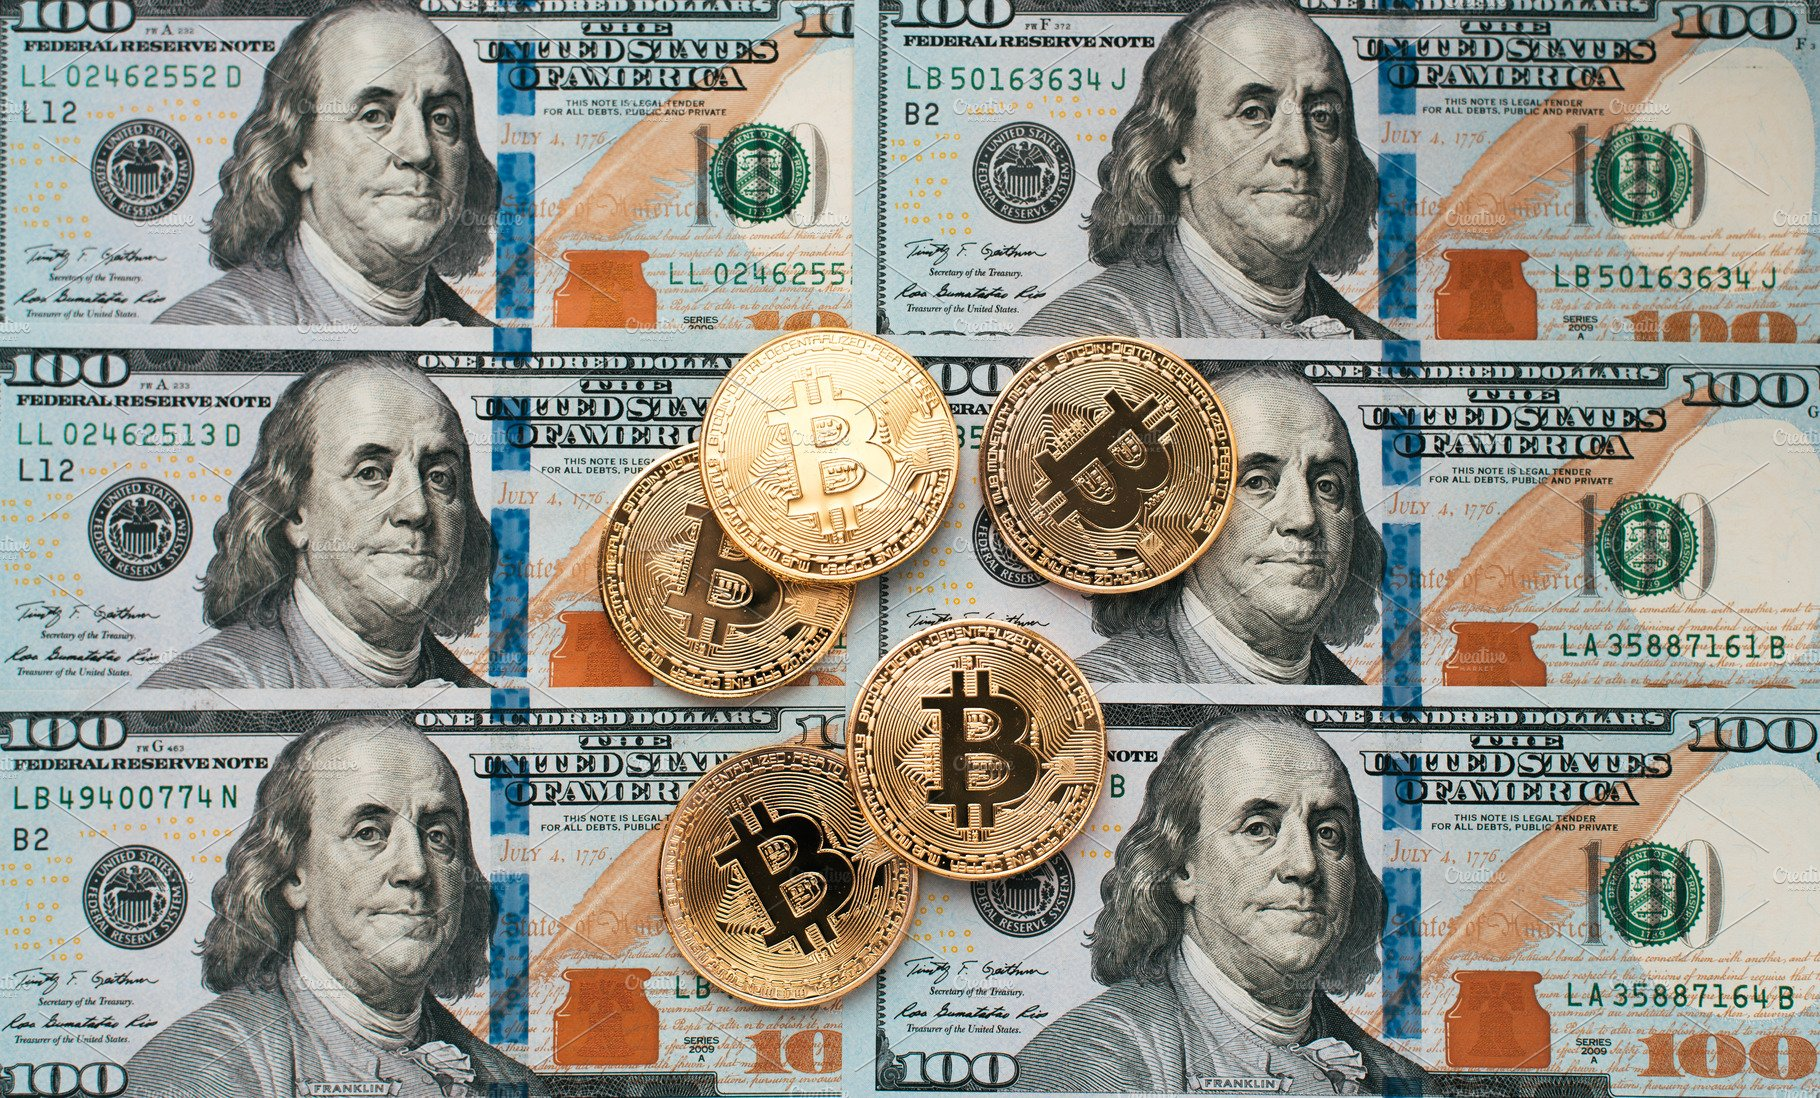 Coins Bitcoin There Are Money On Table A Note Of 100 Dollars The Banknotes Spread Out In Loose Order